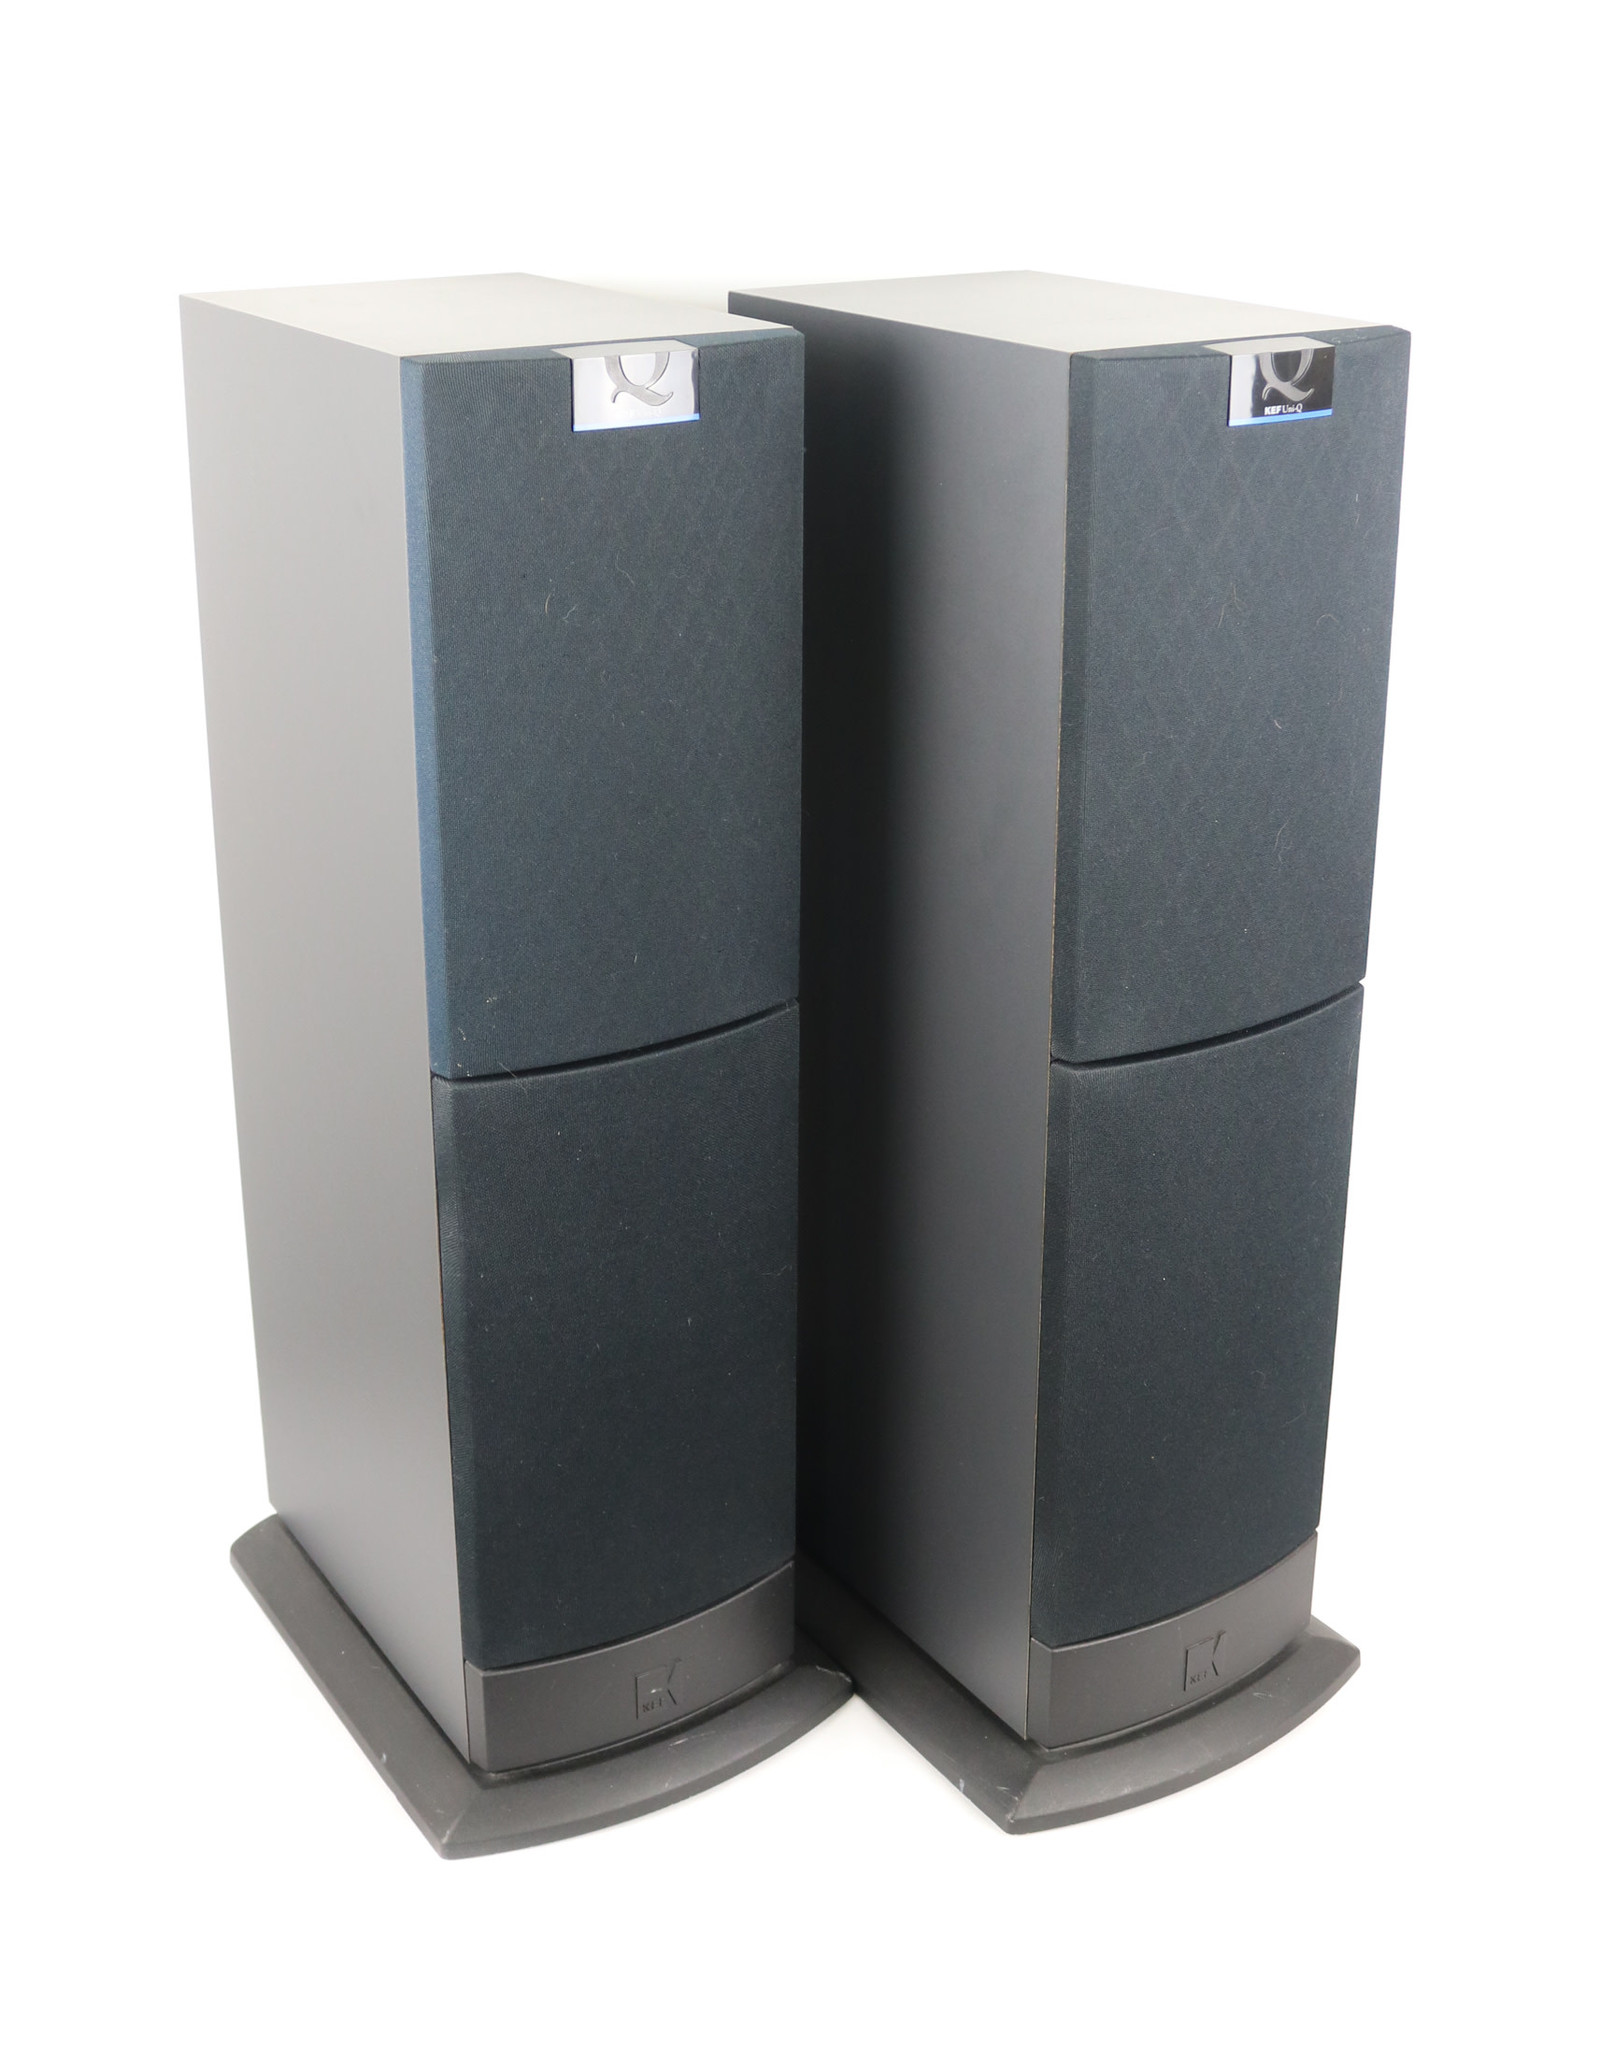 KEF KEF Q30 Floorstanding Speakers USED